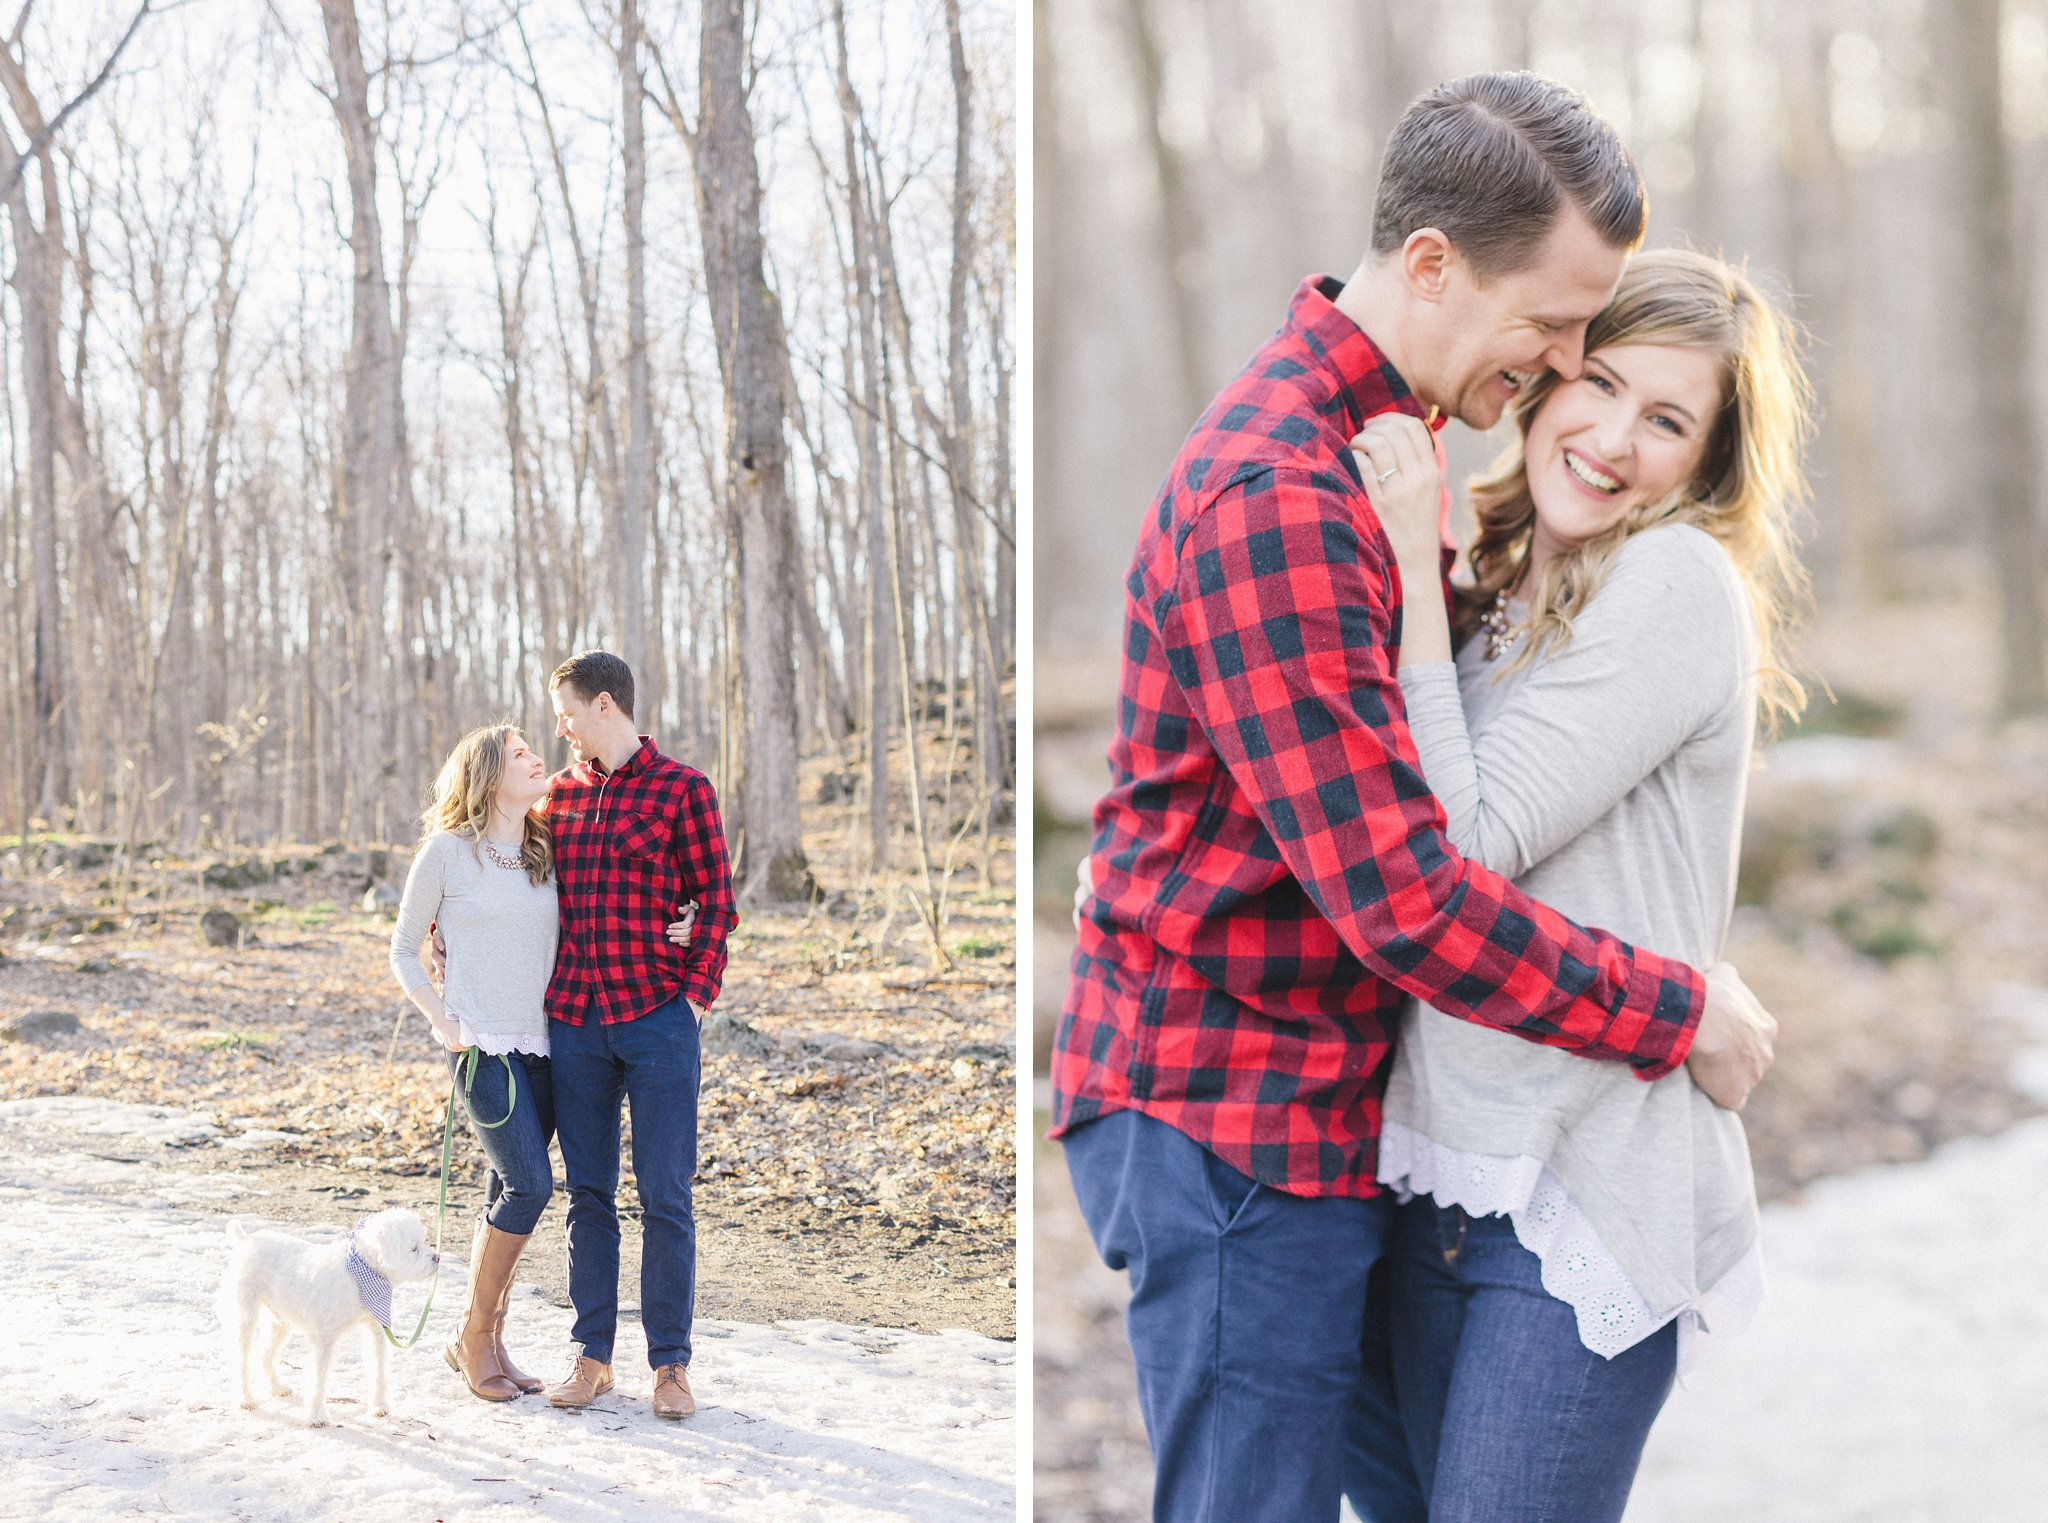 Gatineau Park engagement photos with red plaid shirt